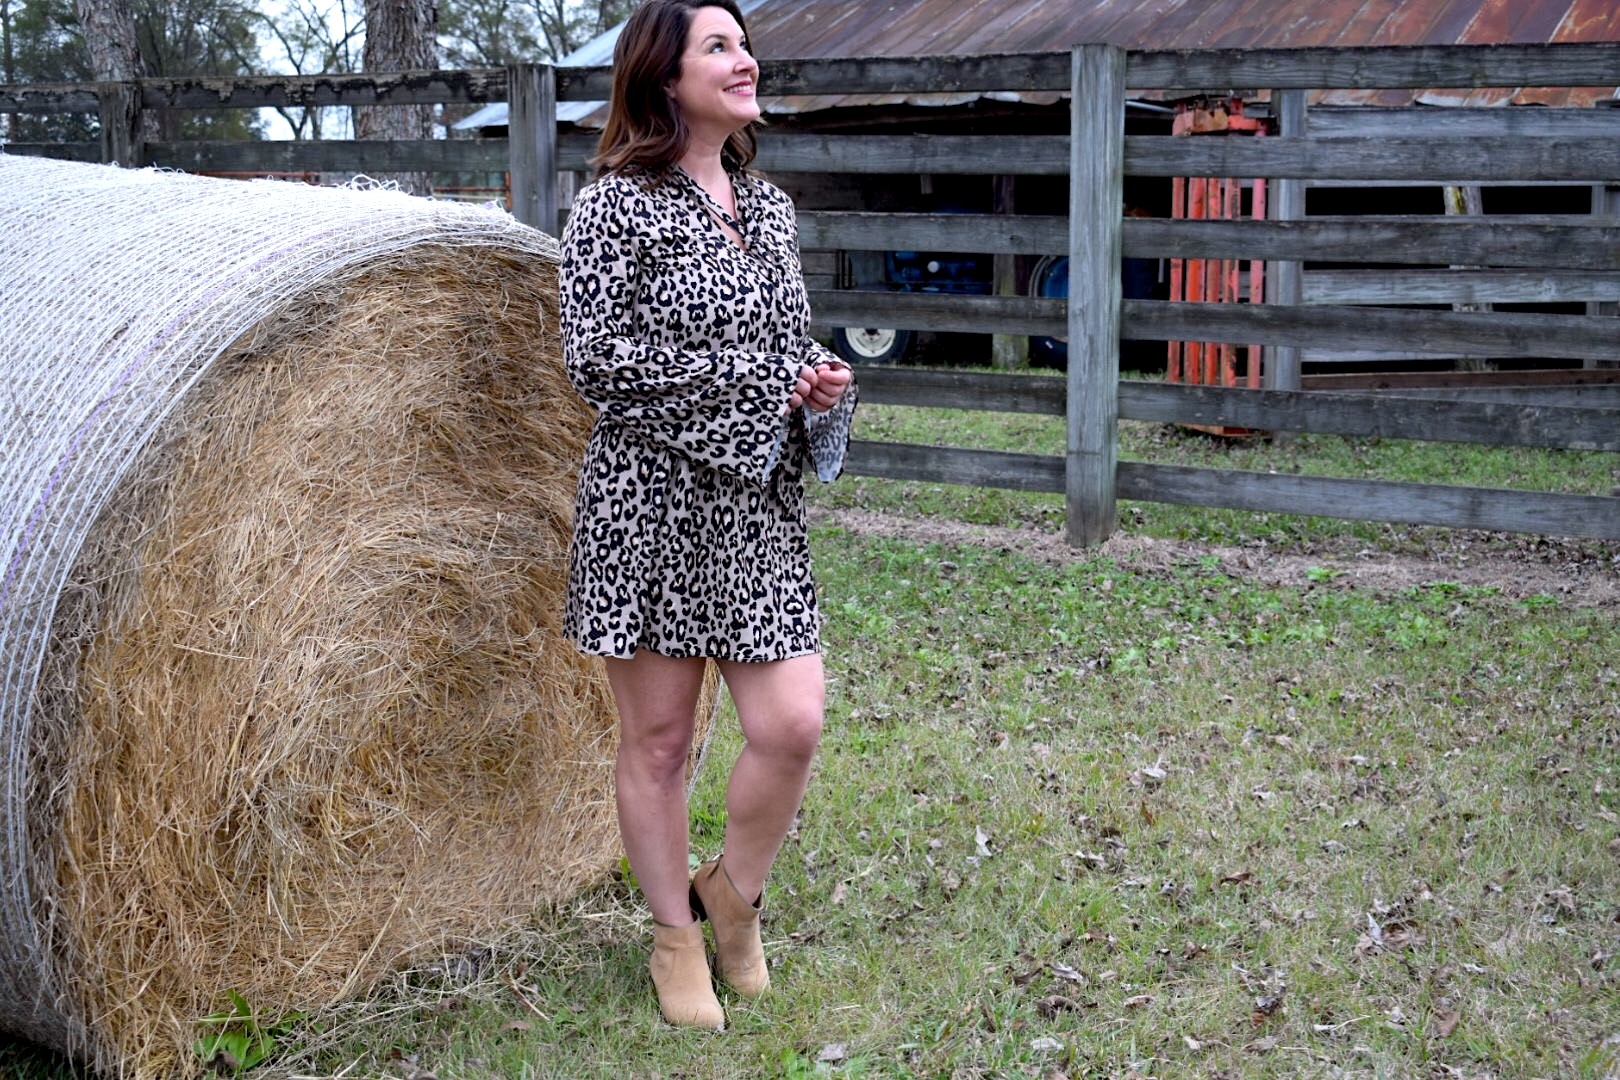 Kim Bishop of Crockpot Empire wearing a Fabrik leopard print dress on a farm in front of a hay bale